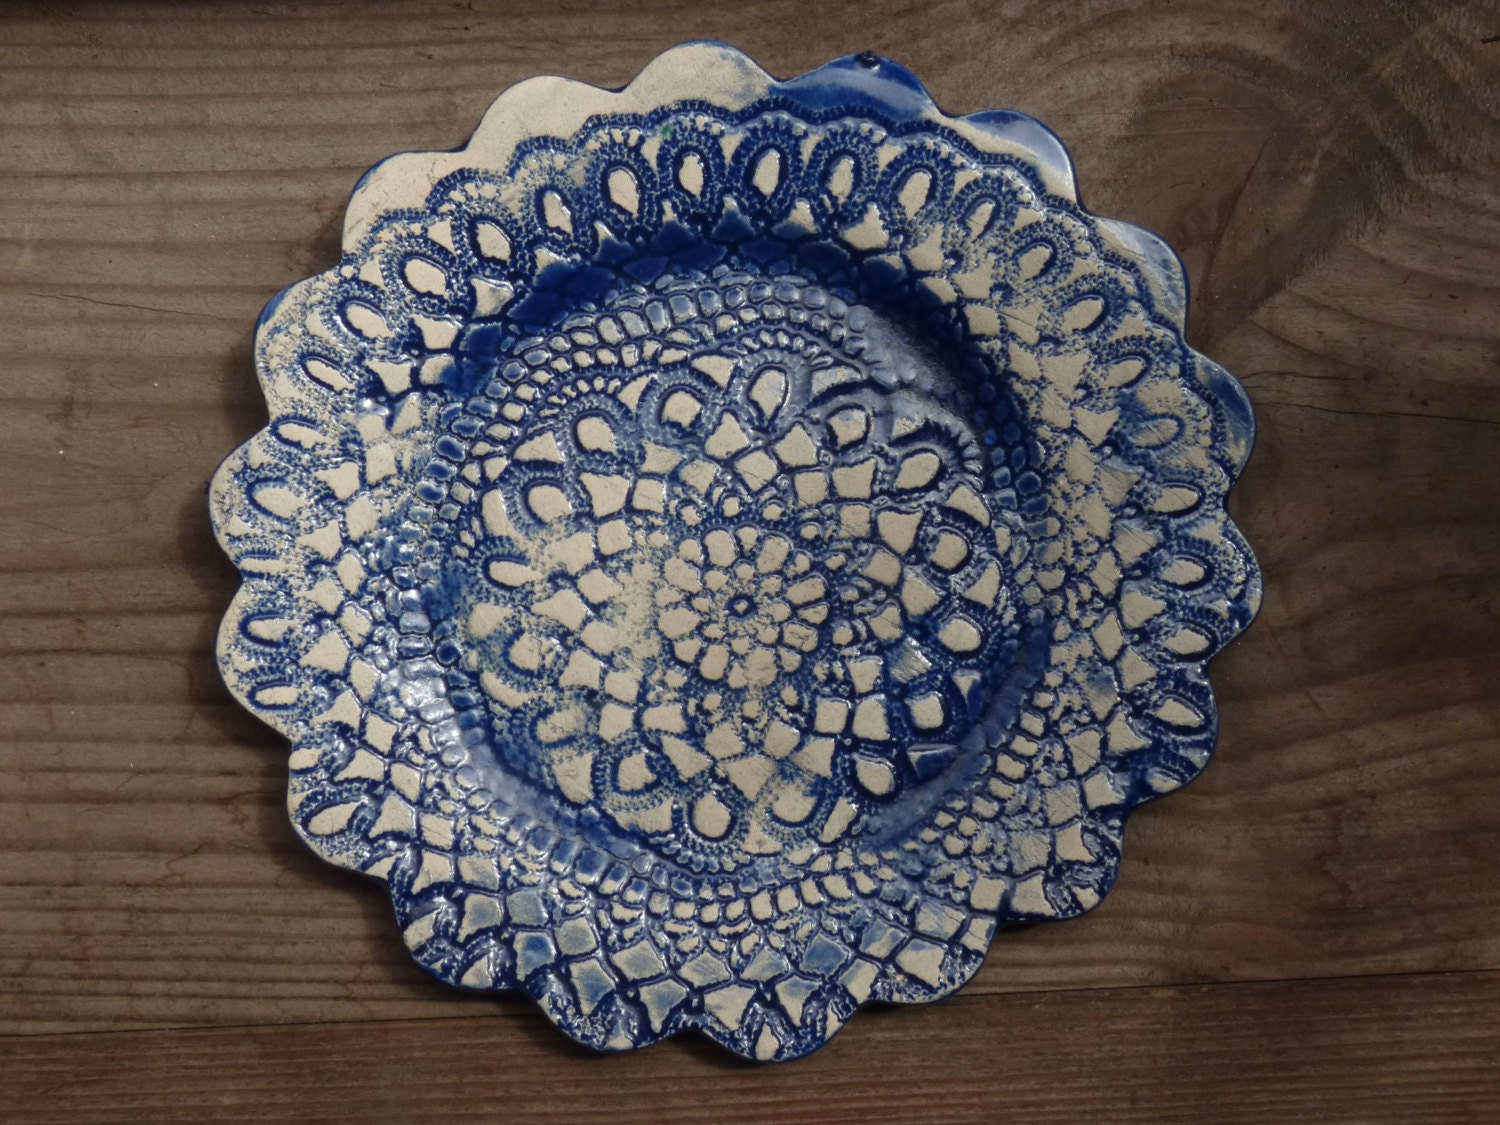 Decorative Plate Blue Ceramic Plate Lace Plate By Foxrosalita. Church Nursery Decorating Ideas. Sun Room Furniture Ideas. 40th Birthday Decor. Boys Wall Decor. Decorative Glass Marbles. Western Style Home Decor. Conference Room Rentals. Porthole Decor